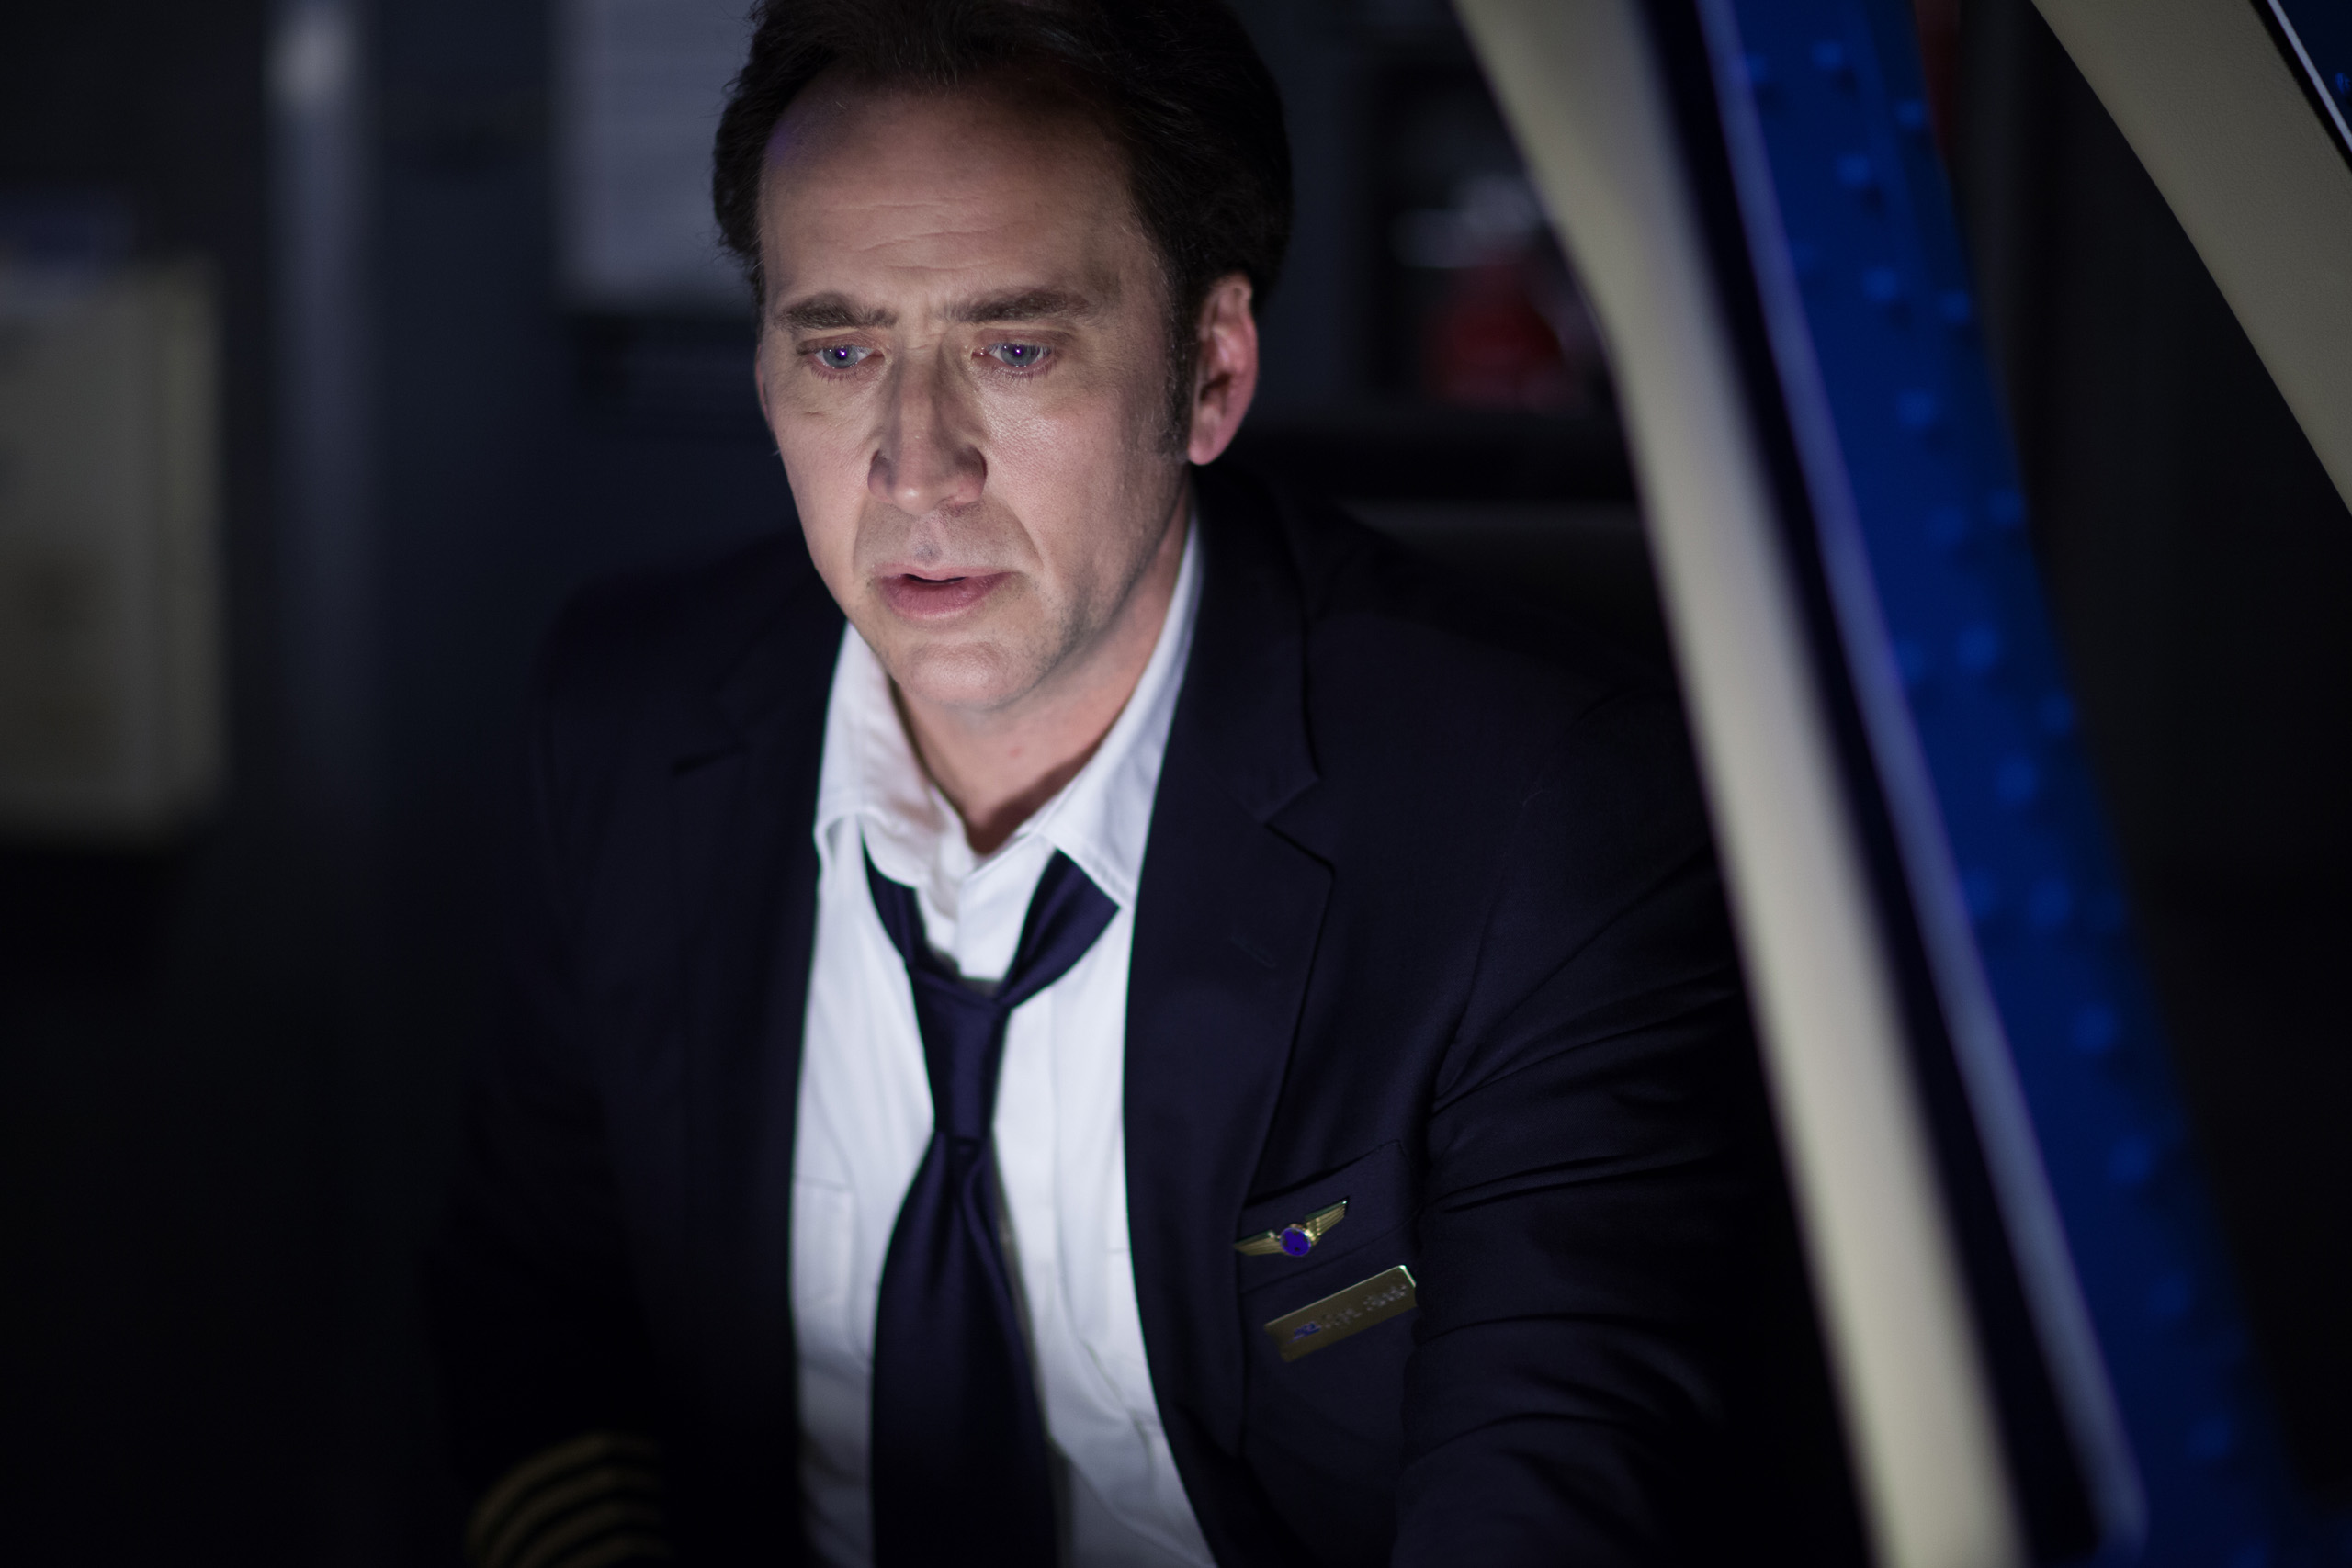 Nicolas Cage as Rayford Steele in Left Behind (2014)